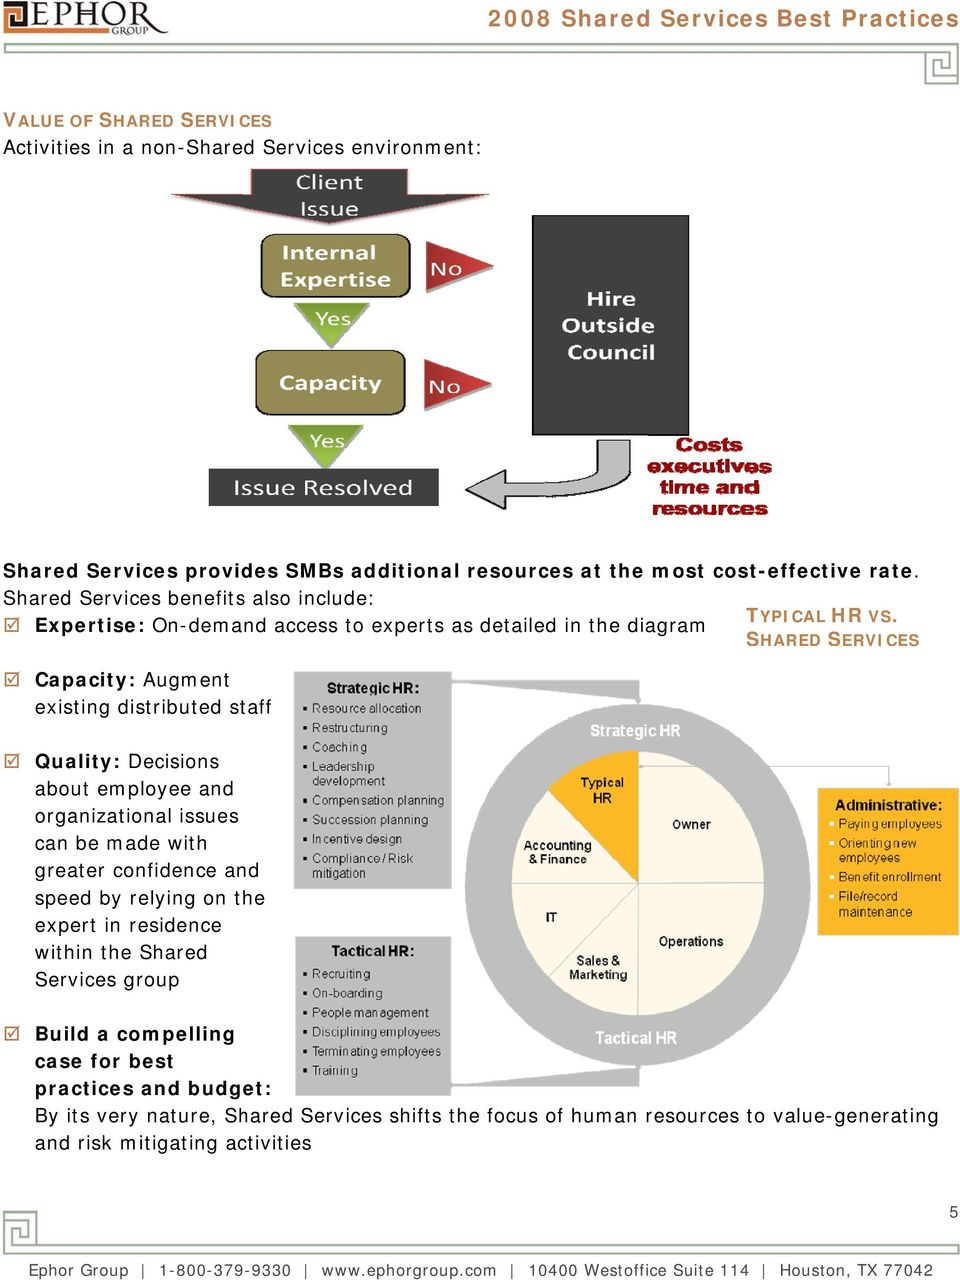 Expertise: On-demand access to experts as detailedd in the diagram SHARED SERVICES Capacity: Augment existing distributed staff Quality: Decisions about employee and organizational issues can be made